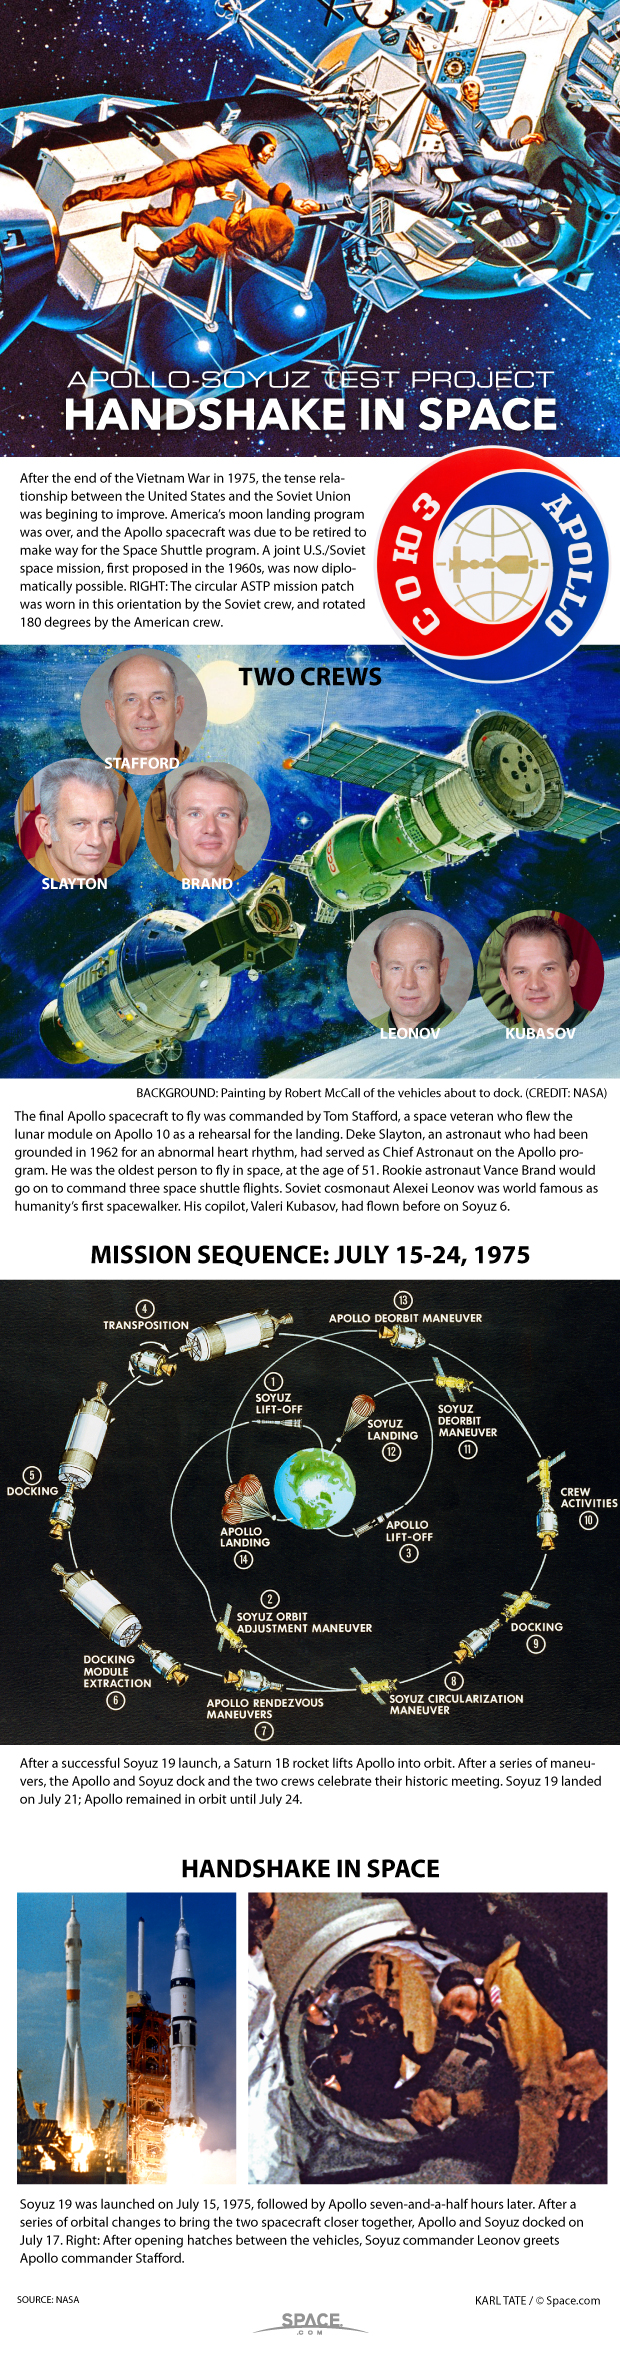 Apollo-Soyuz: How the First Joint Space Mission Worked (Infographic)